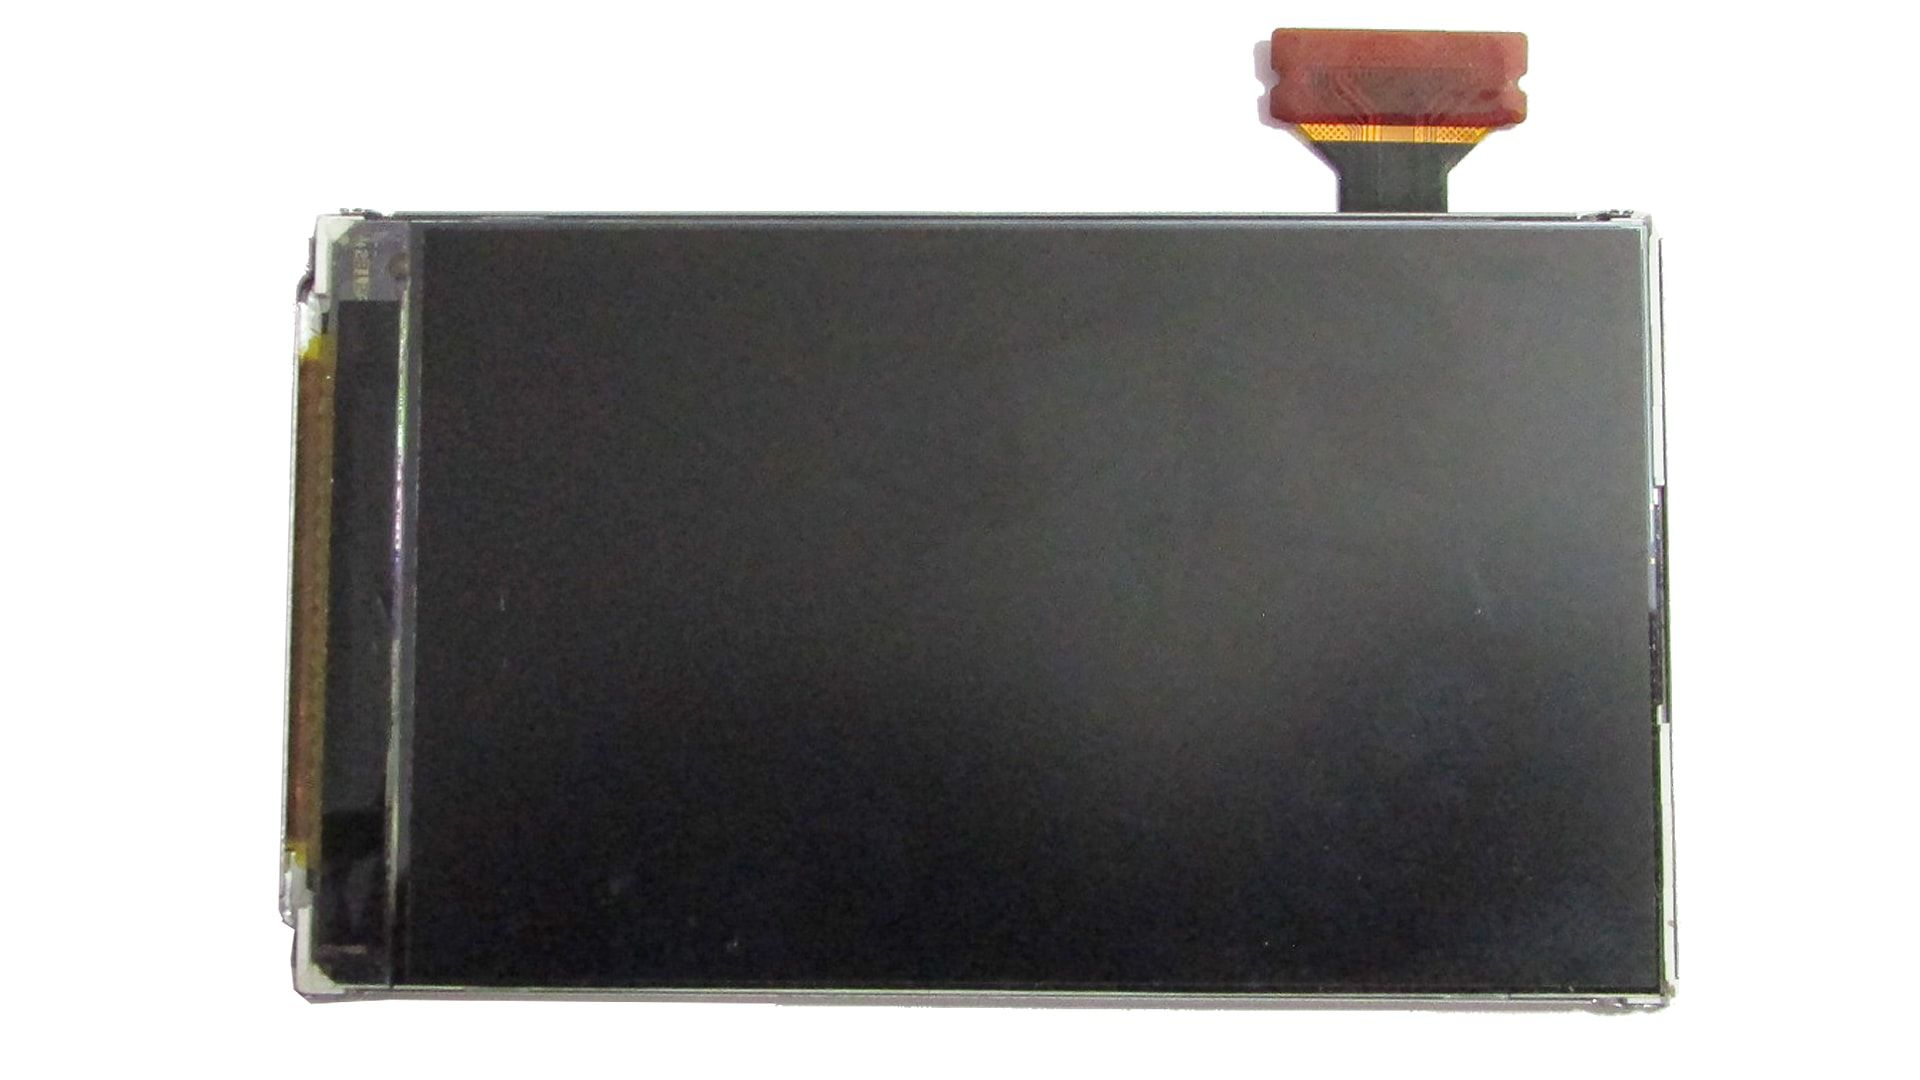 Tela Display  LG Crystal GD900